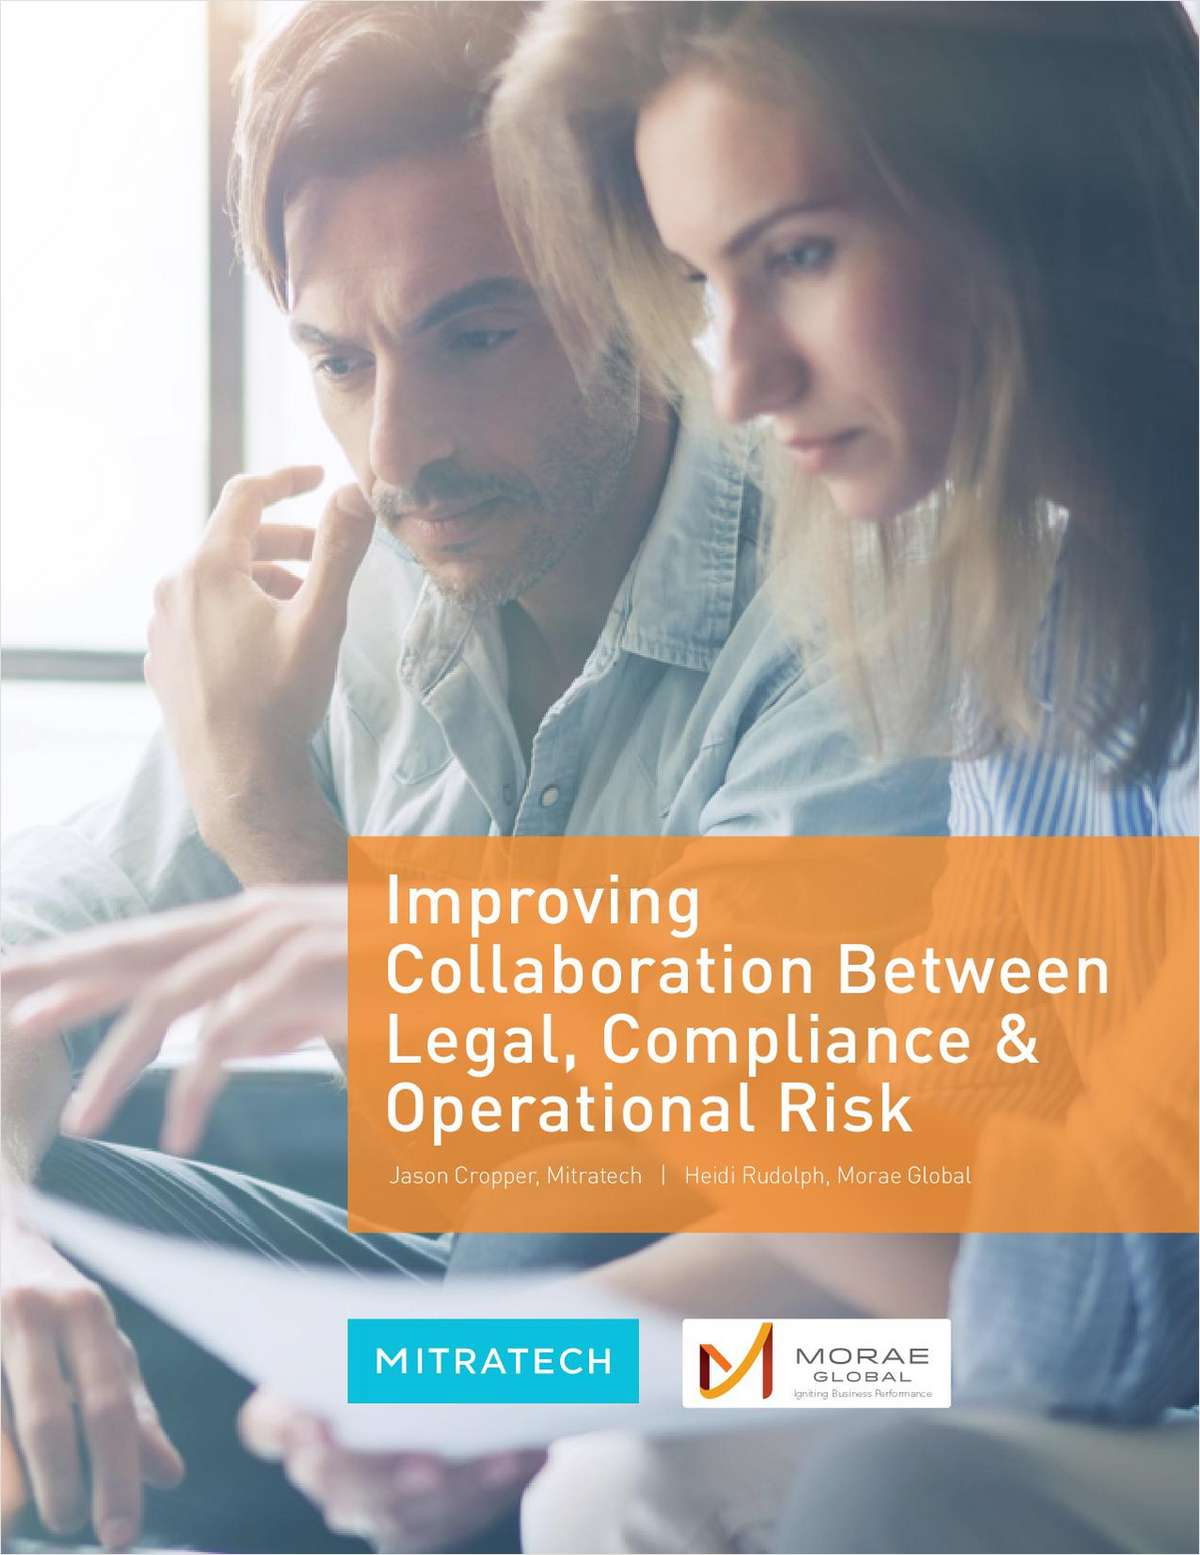 Improving Collaboration Between Legal, Compliance & Operational Risk